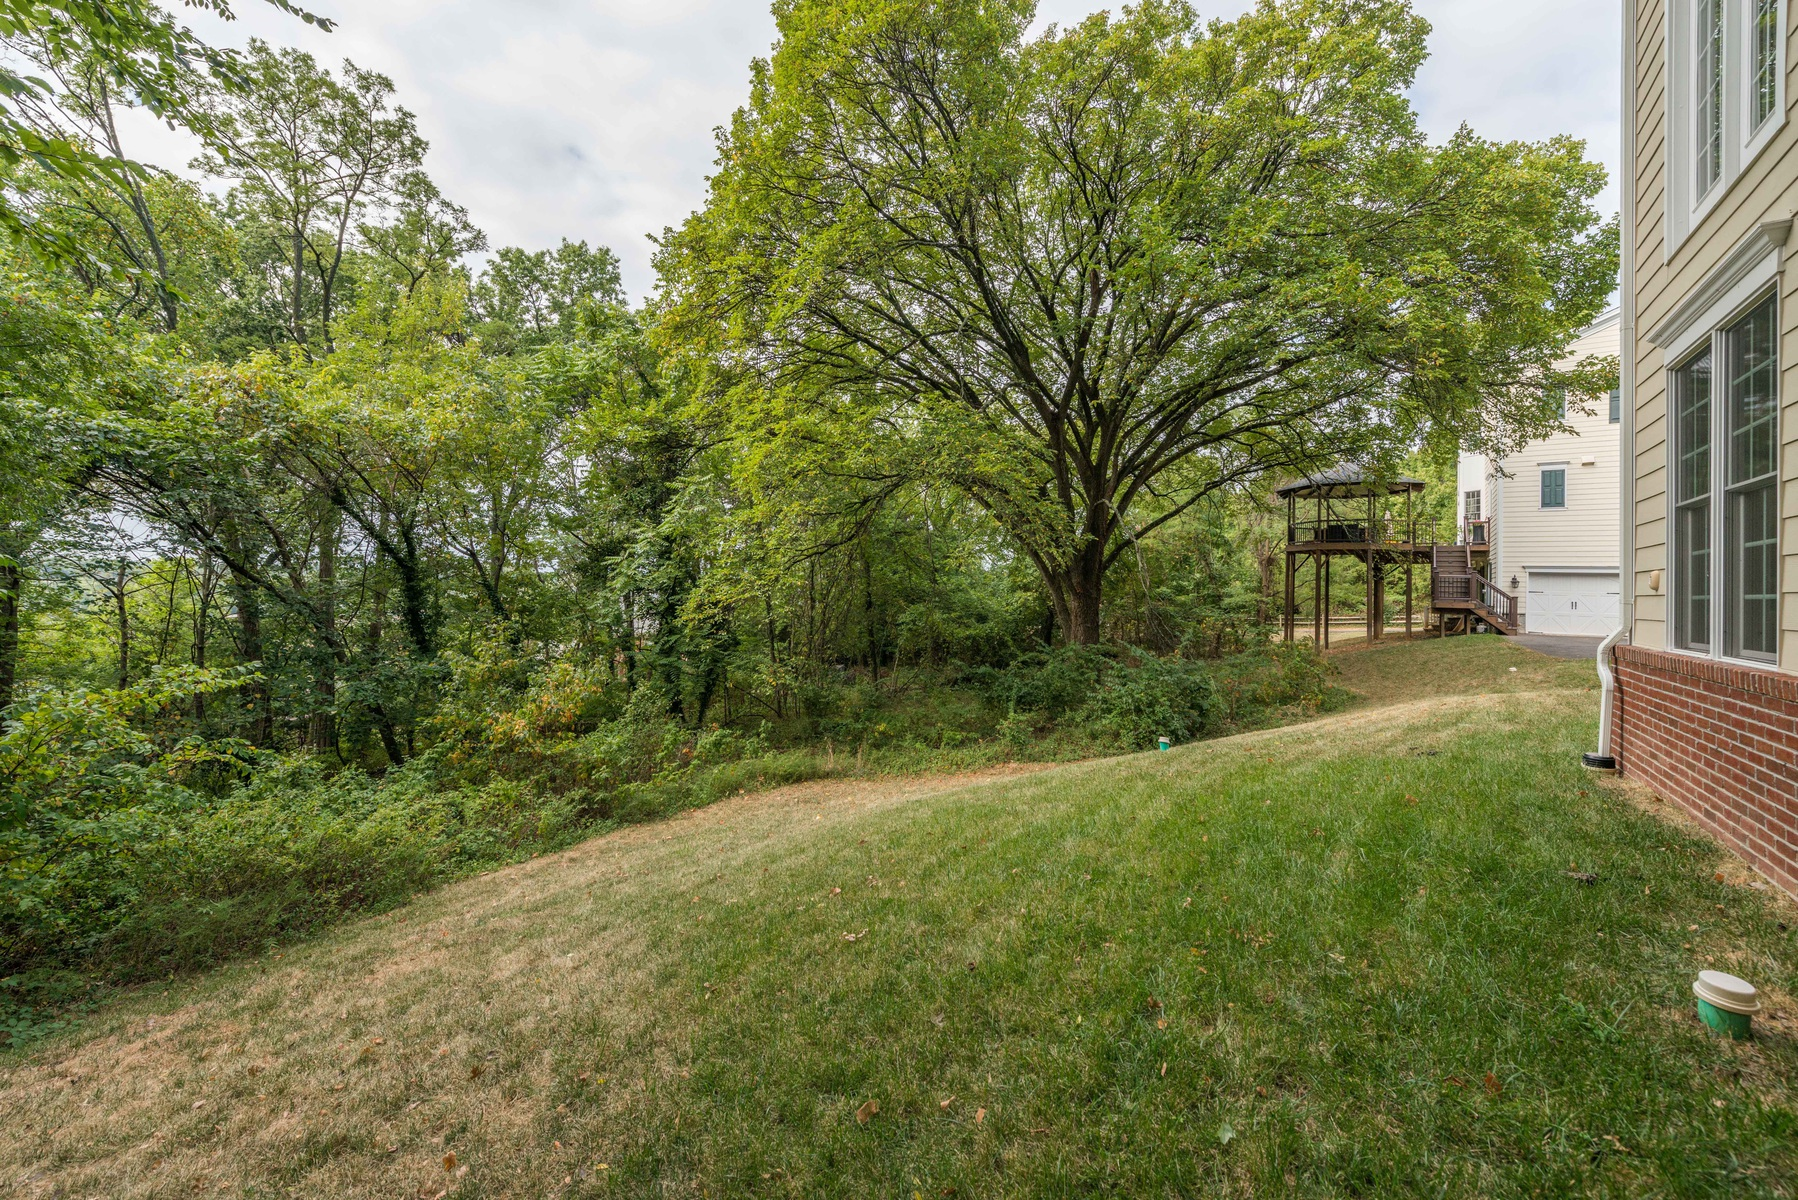 Additional photo for property listing at Cooper Dawson 104 Quaker Lane N Alexandria, Βιρτζινια 22304 Ηνωμενεσ Πολιτειεσ